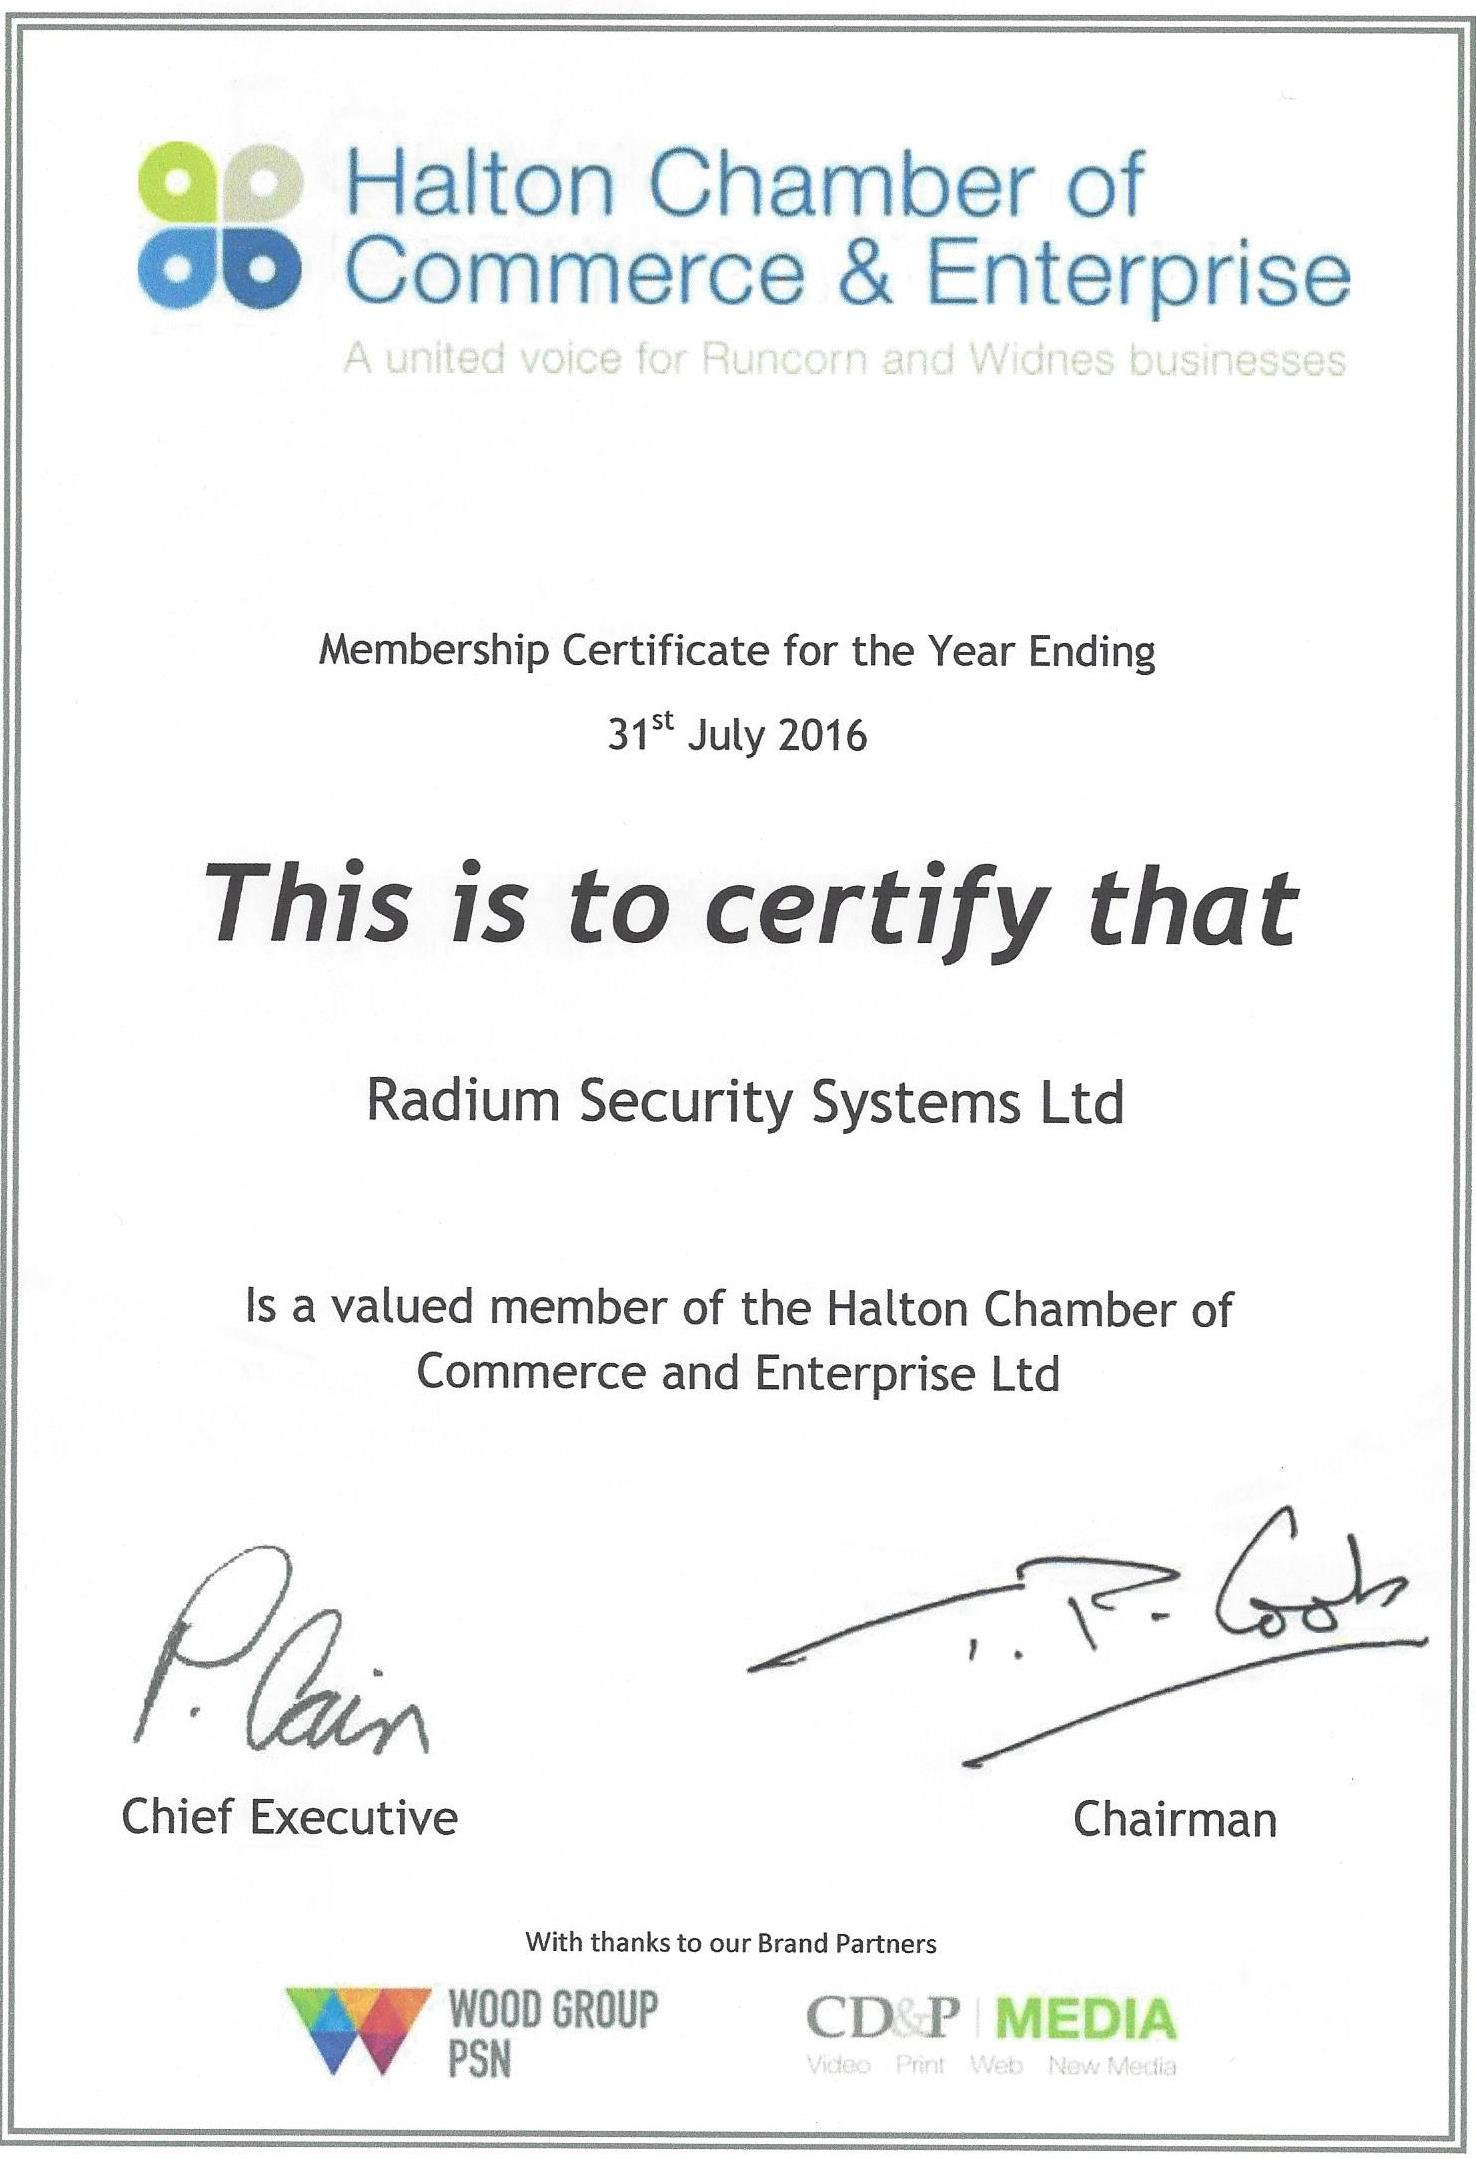 Radium Security Systems Ltd is a proud member of Halton chamber of commerce